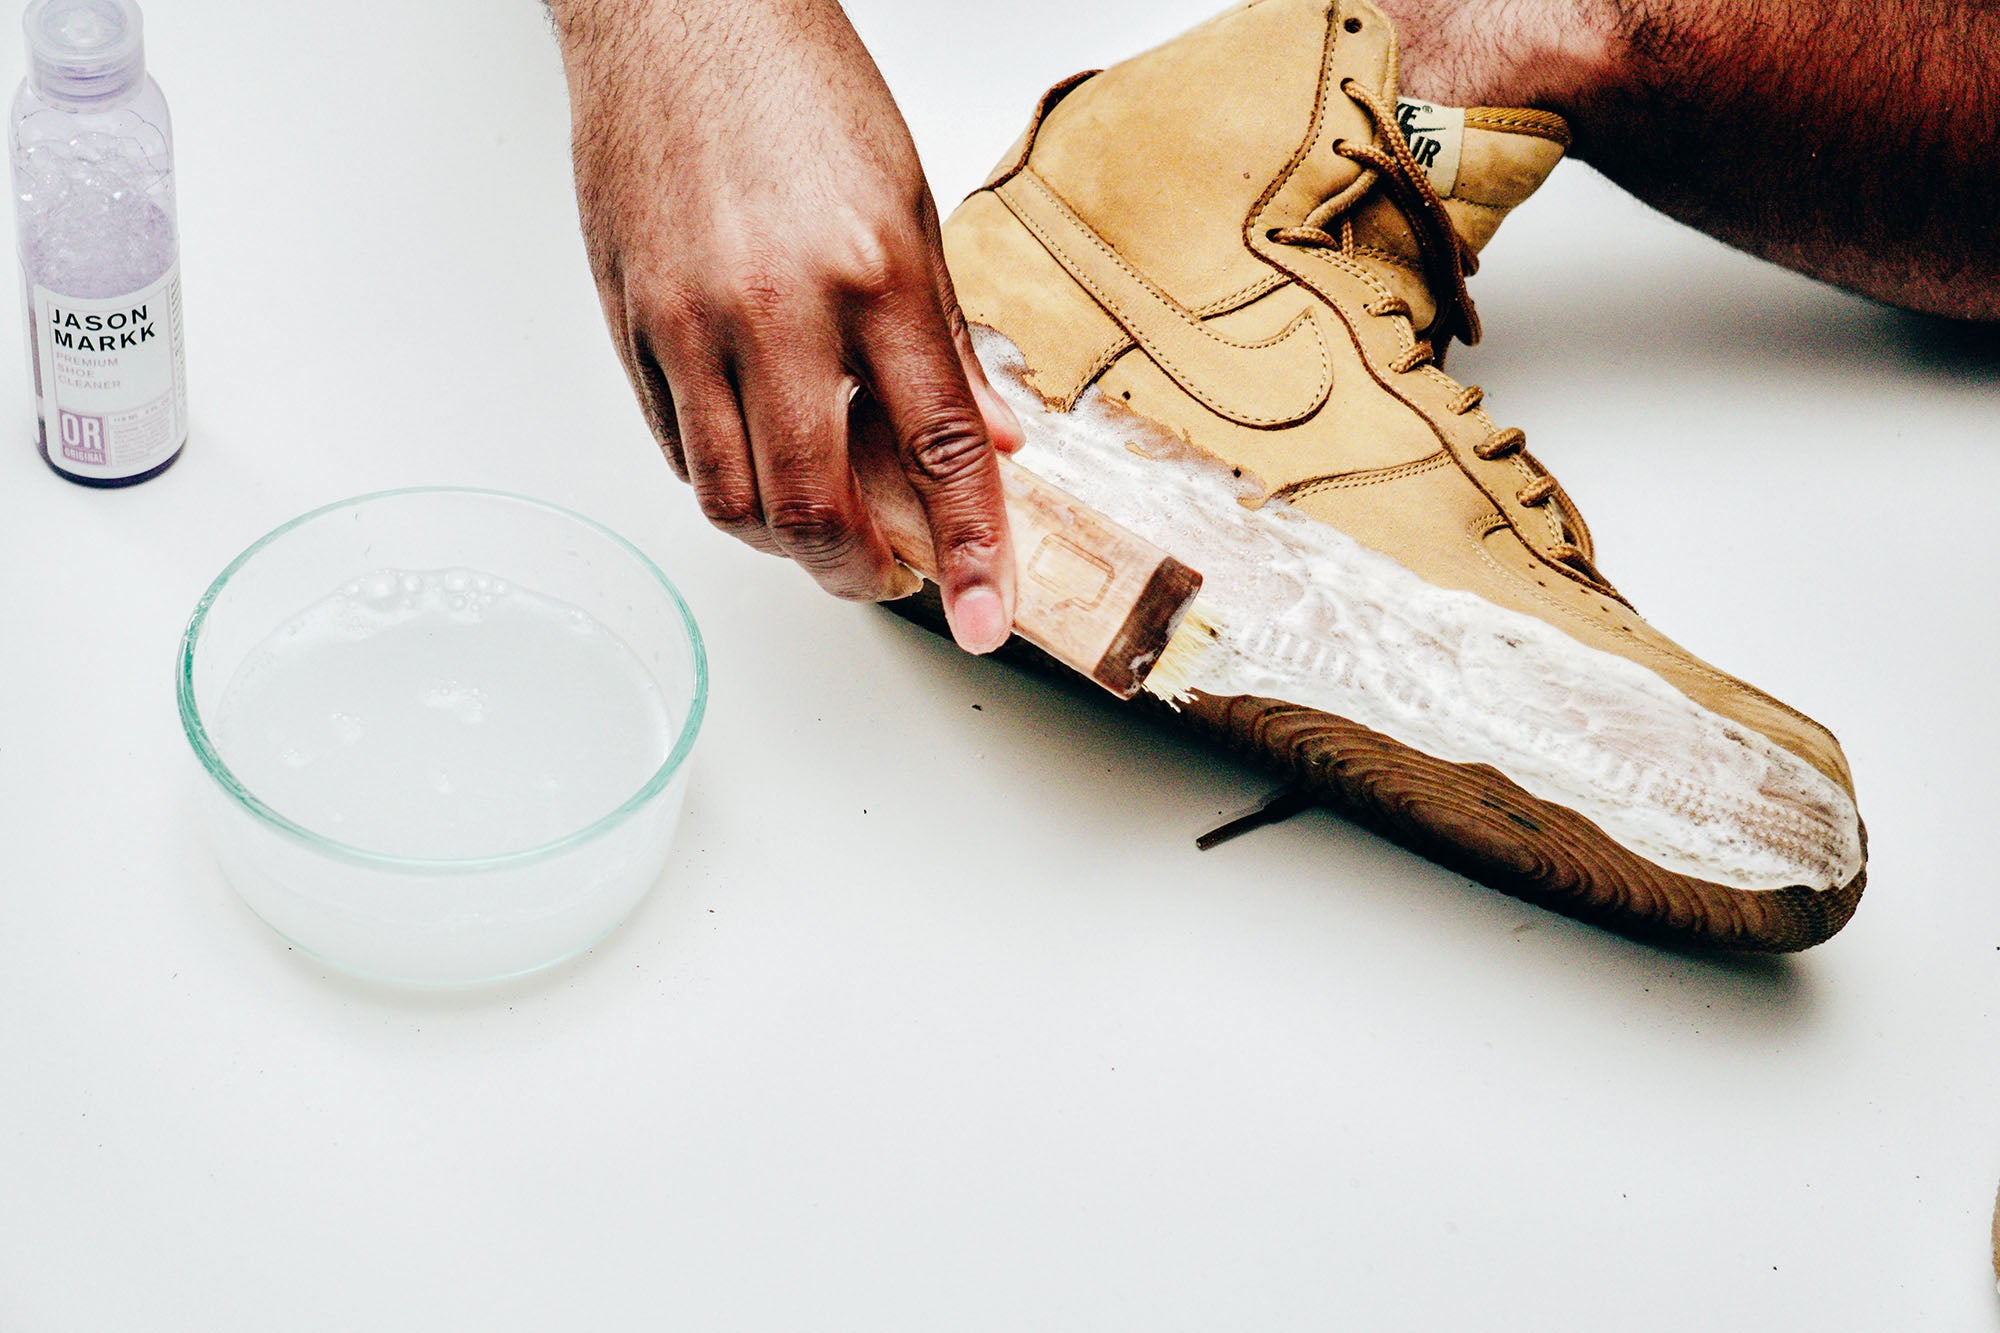 Jason Markk Sneaker Care 101 How to clean Nubuck shoes step 6